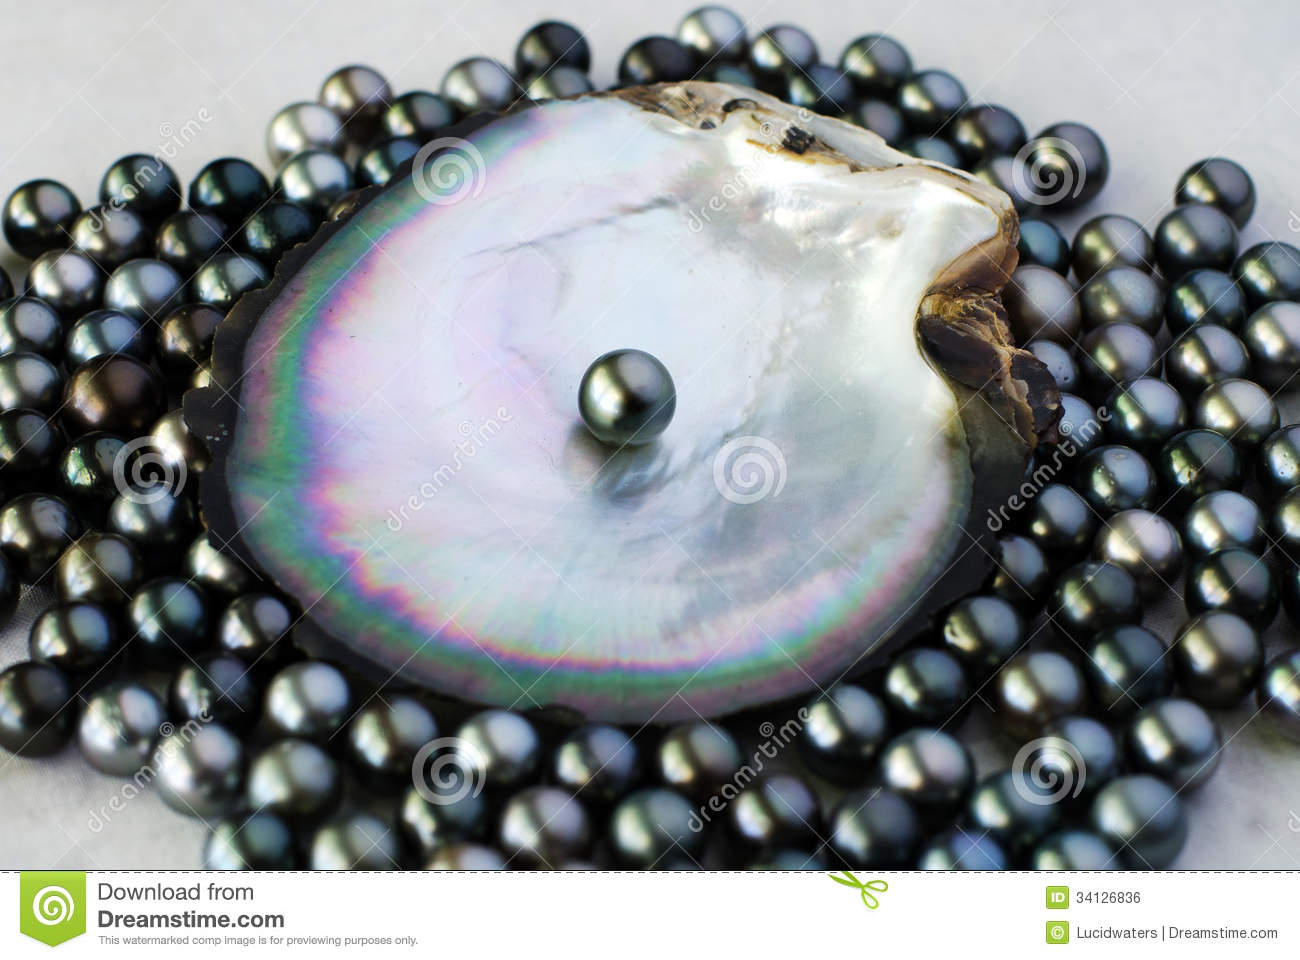 stock most cook farmed lip shell pearls material parts oyster remote of cultivation islands rorotonga sep photos pearl black free royalty photo image